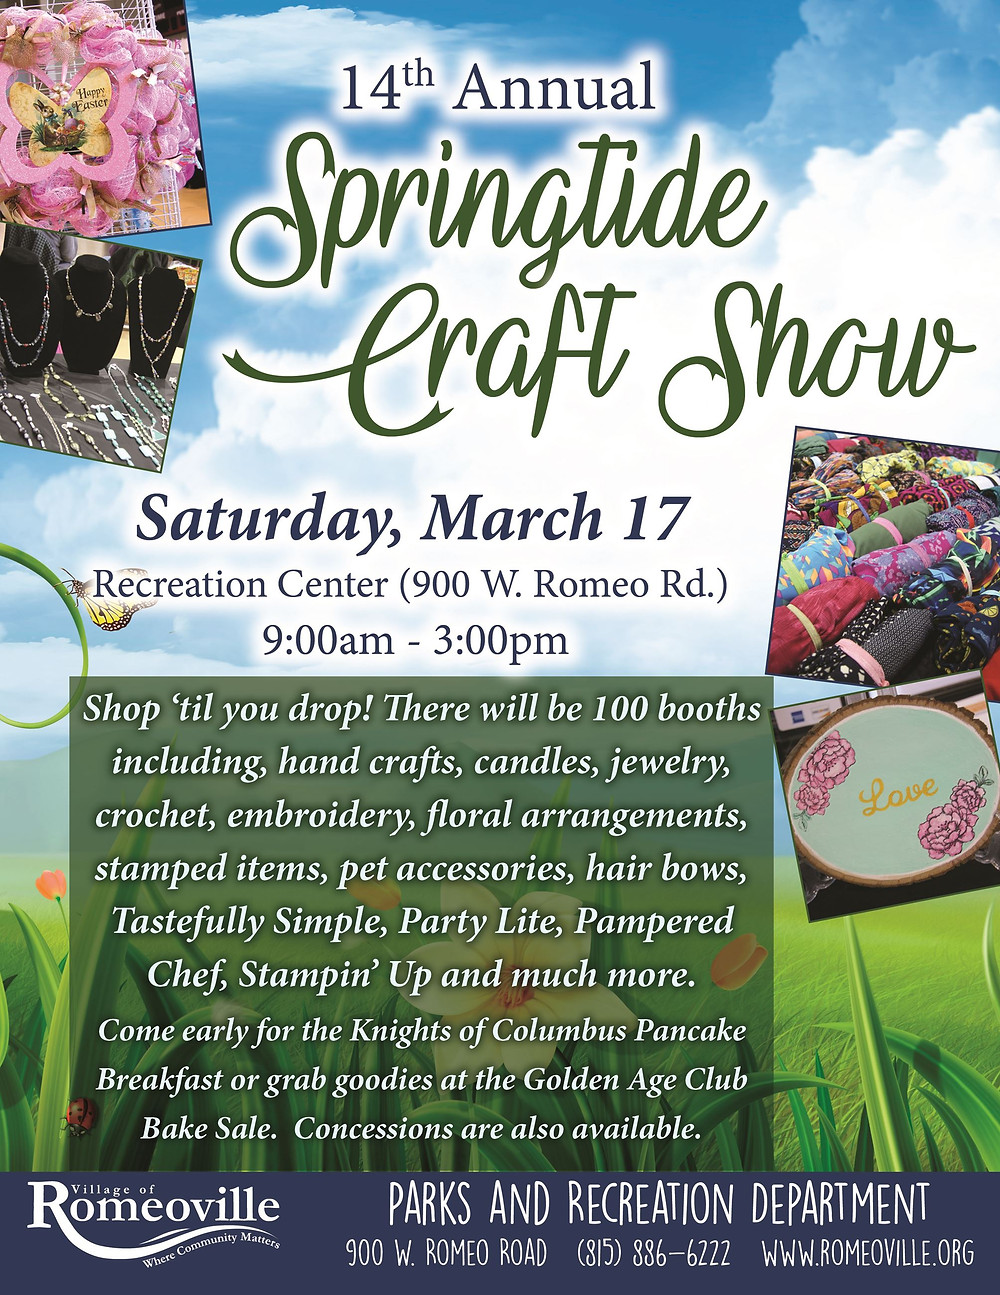 Join us at the Romeoville Springtide Craft Show, this Saturday, March 17, 2018